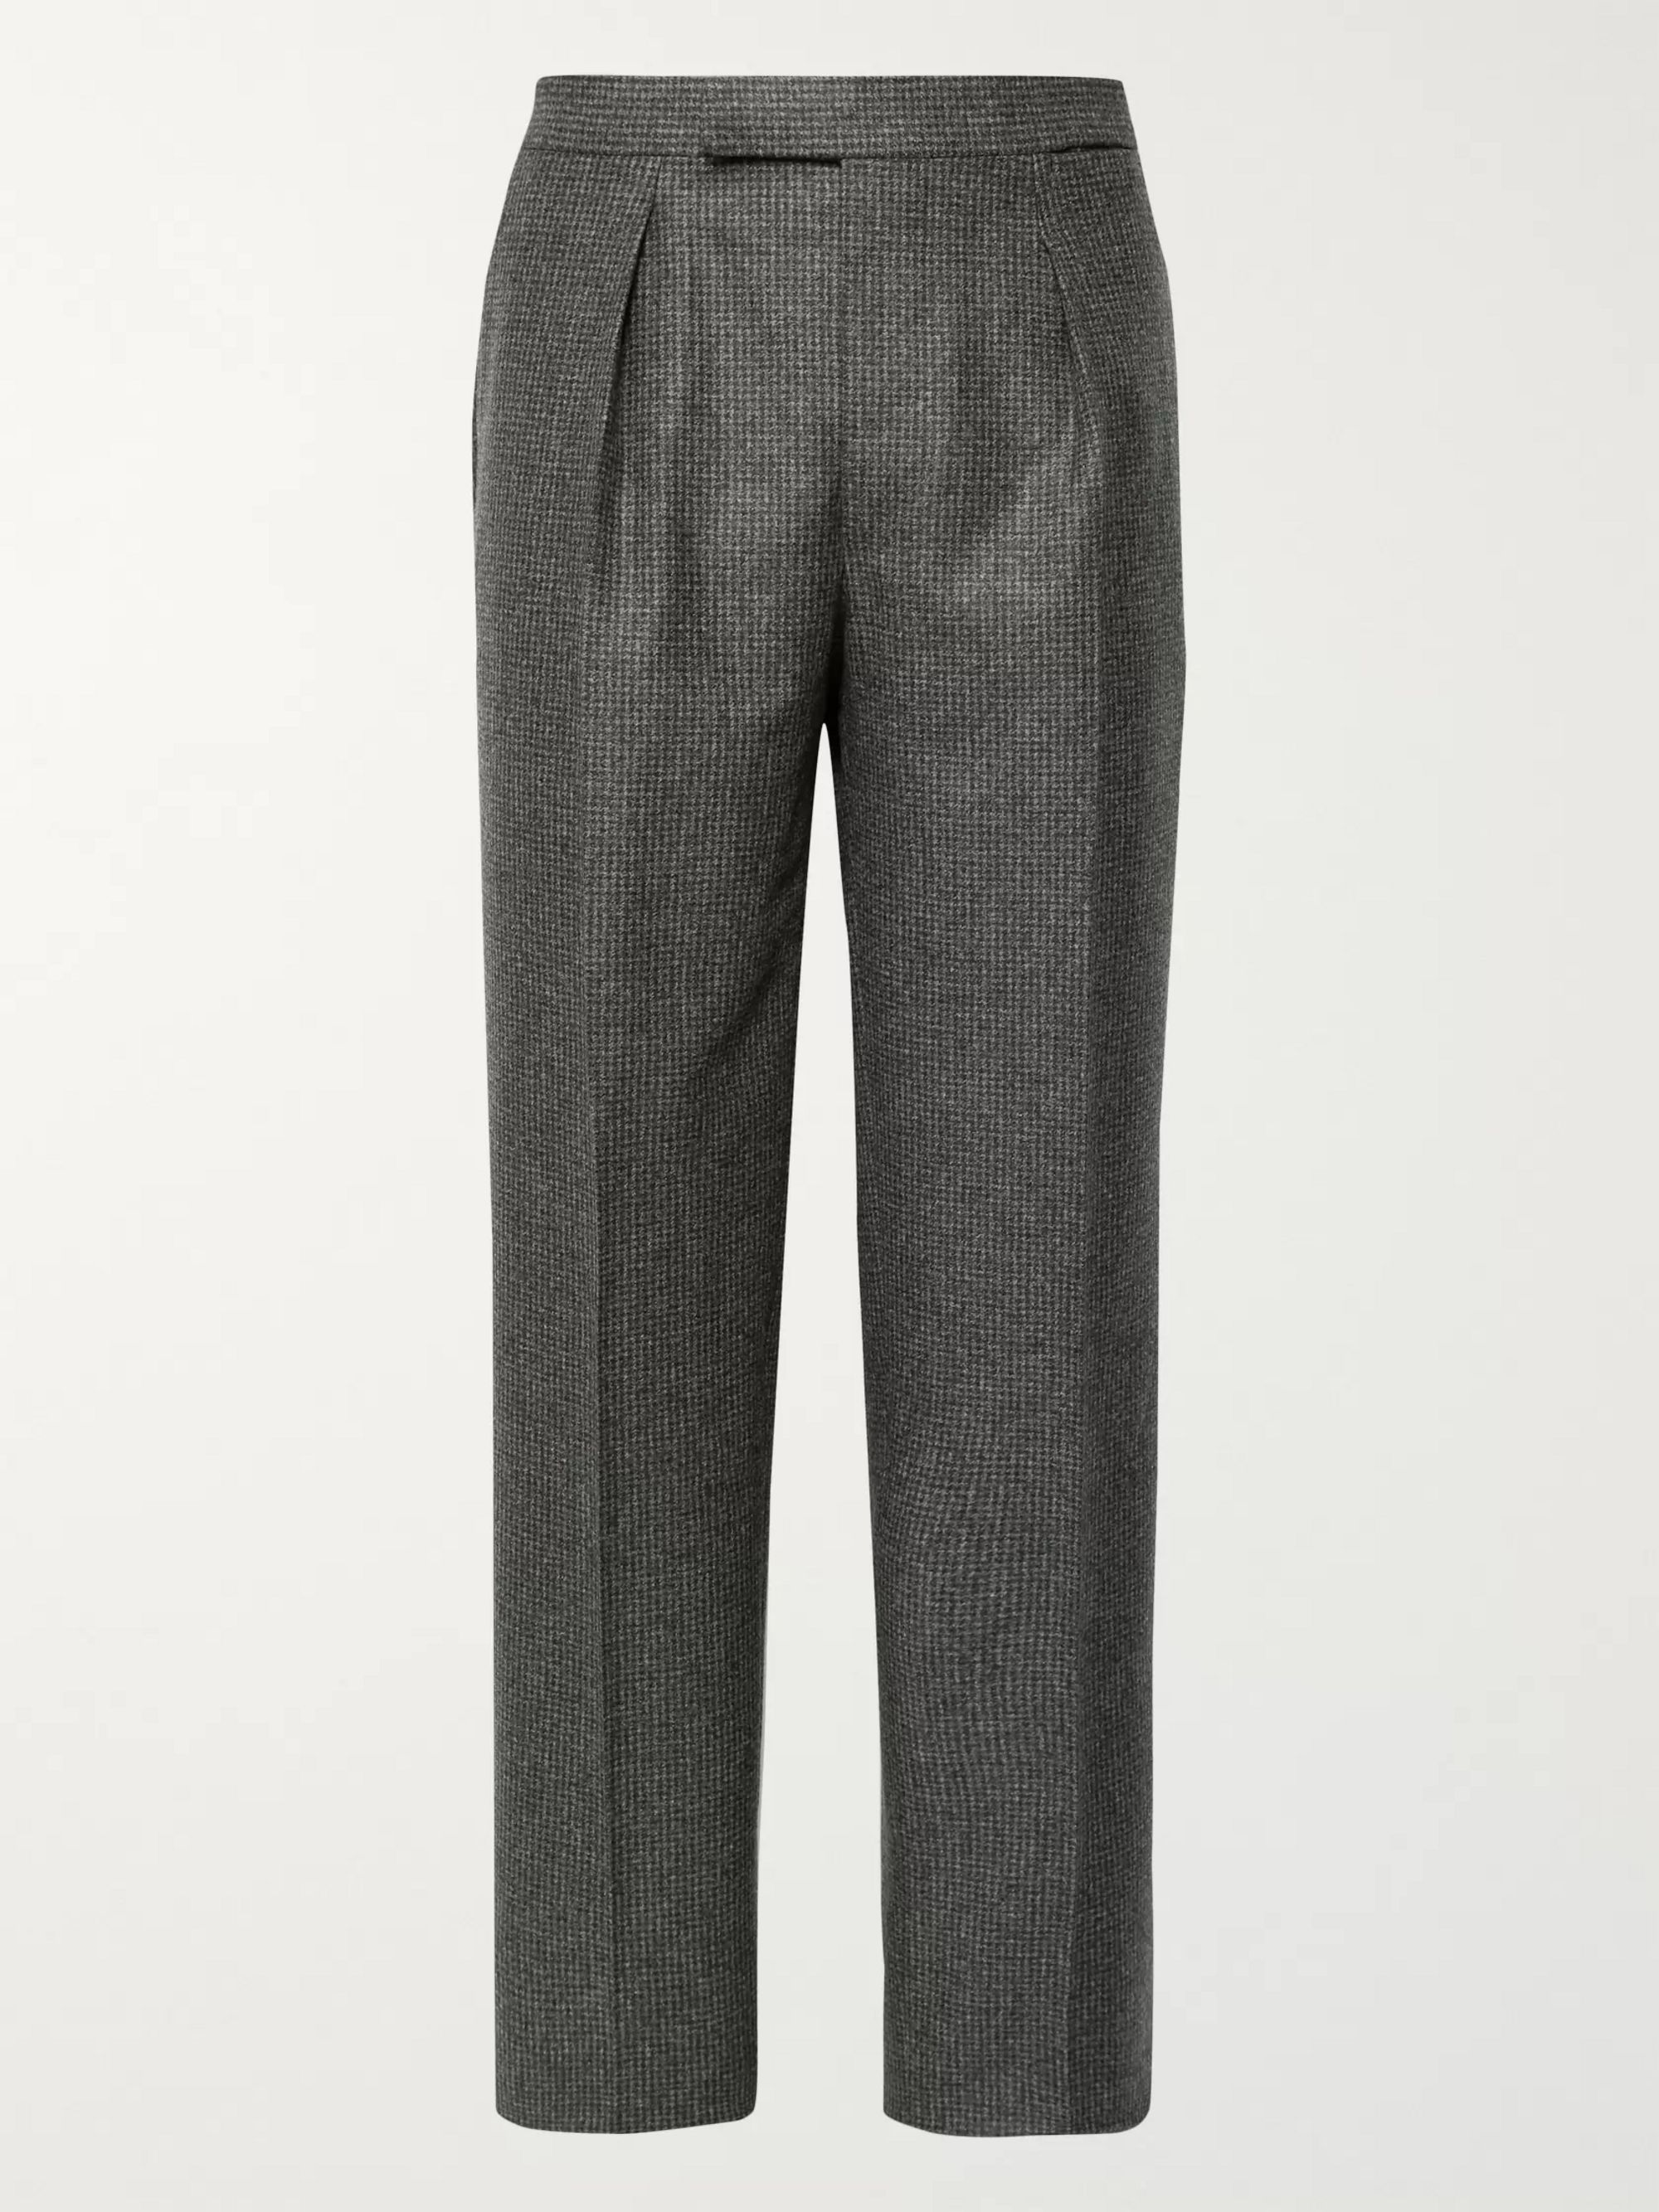 Camoshita + Vitale Barberis Canonico Dark-Grey Pleated Puppytooth Wool Suit Trousers